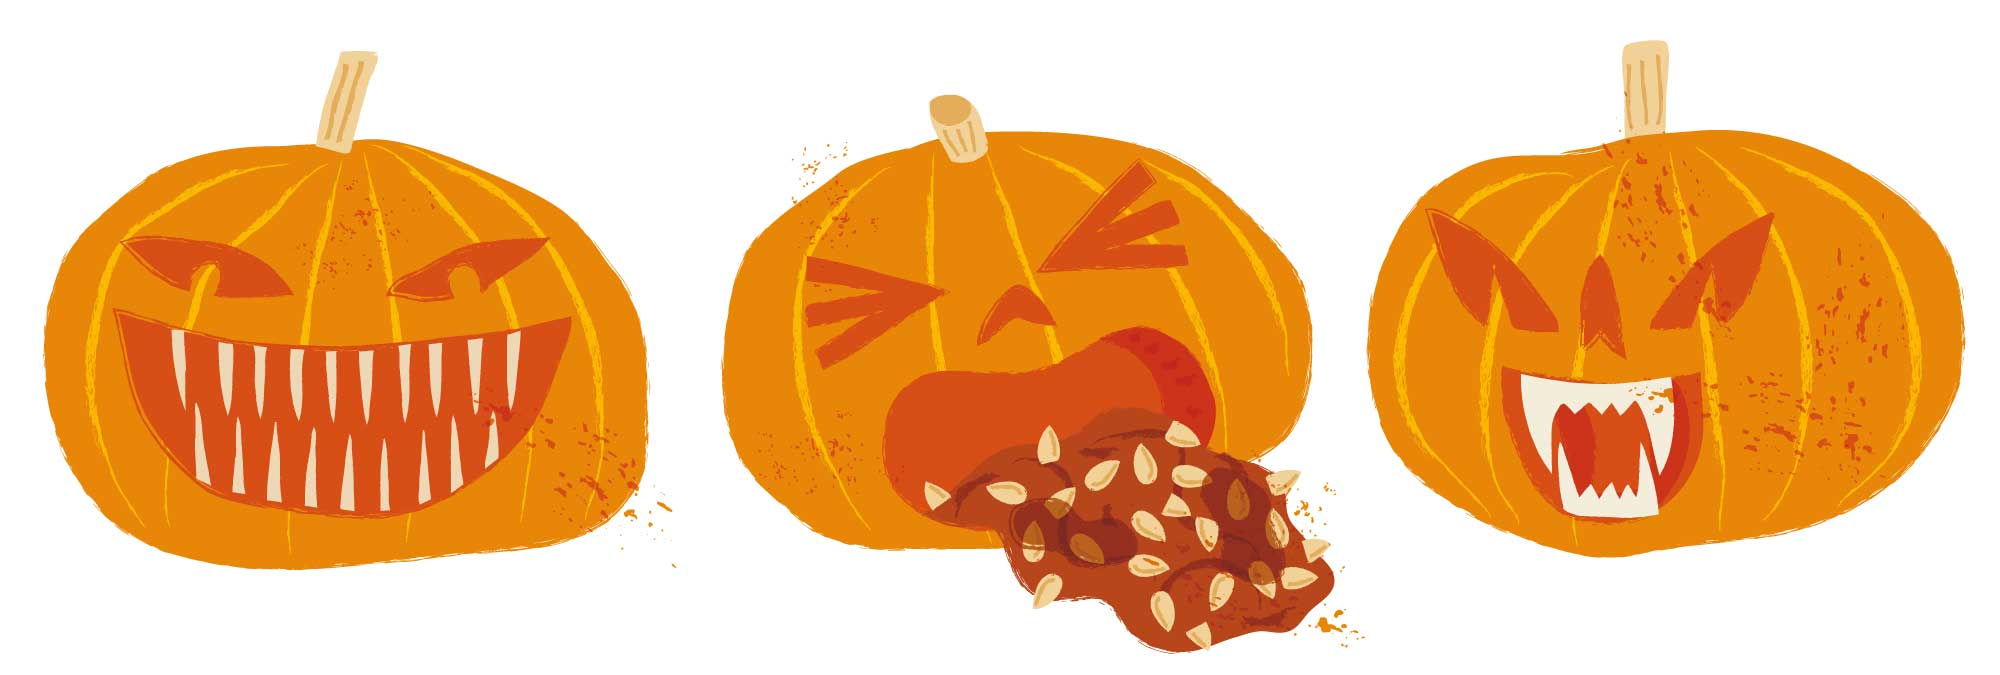 Three disgusting pumpkins by Elly Jahnz, for 2020: Nature Month by Month published by Nosy Crow